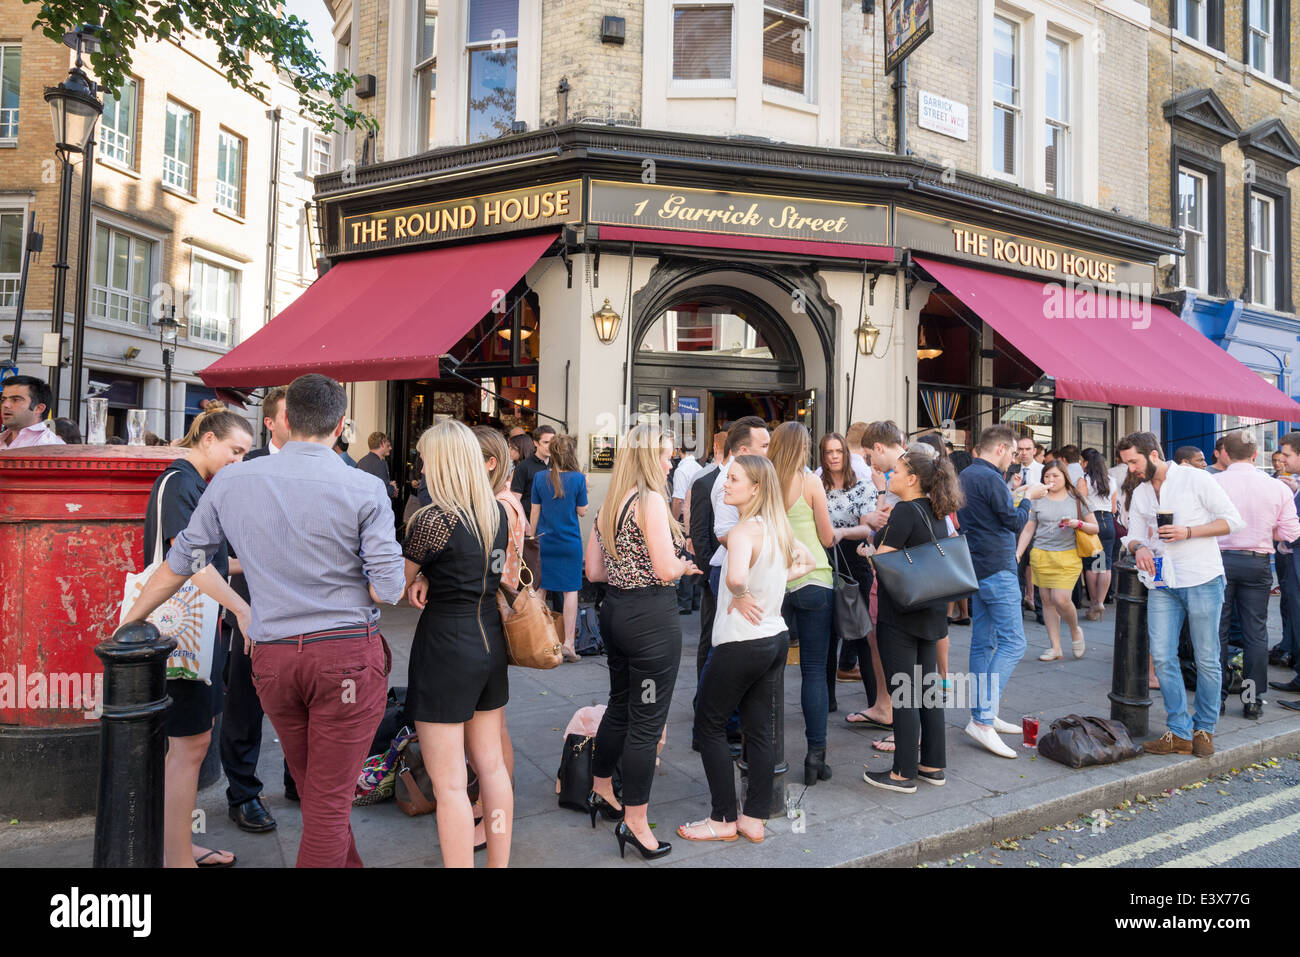 Unusual People Drinking Outside The Round House Pub In Garrick Street  With Foxy People Drinking Outside The Round House Pub In Garrick Street Covent Garden  London England Uk With Captivating Garden Retaining Wall Systems Also Garden Shed Ie In Addition Elizabeth Garden And Botanic Garden Dundee As Well As Gordon Castle Walled Garden Additionally Segret Garden From Alamycom With   Foxy People Drinking Outside The Round House Pub In Garrick Street  With Captivating People Drinking Outside The Round House Pub In Garrick Street Covent Garden  London England Uk And Unusual Garden Retaining Wall Systems Also Garden Shed Ie In Addition Elizabeth Garden From Alamycom